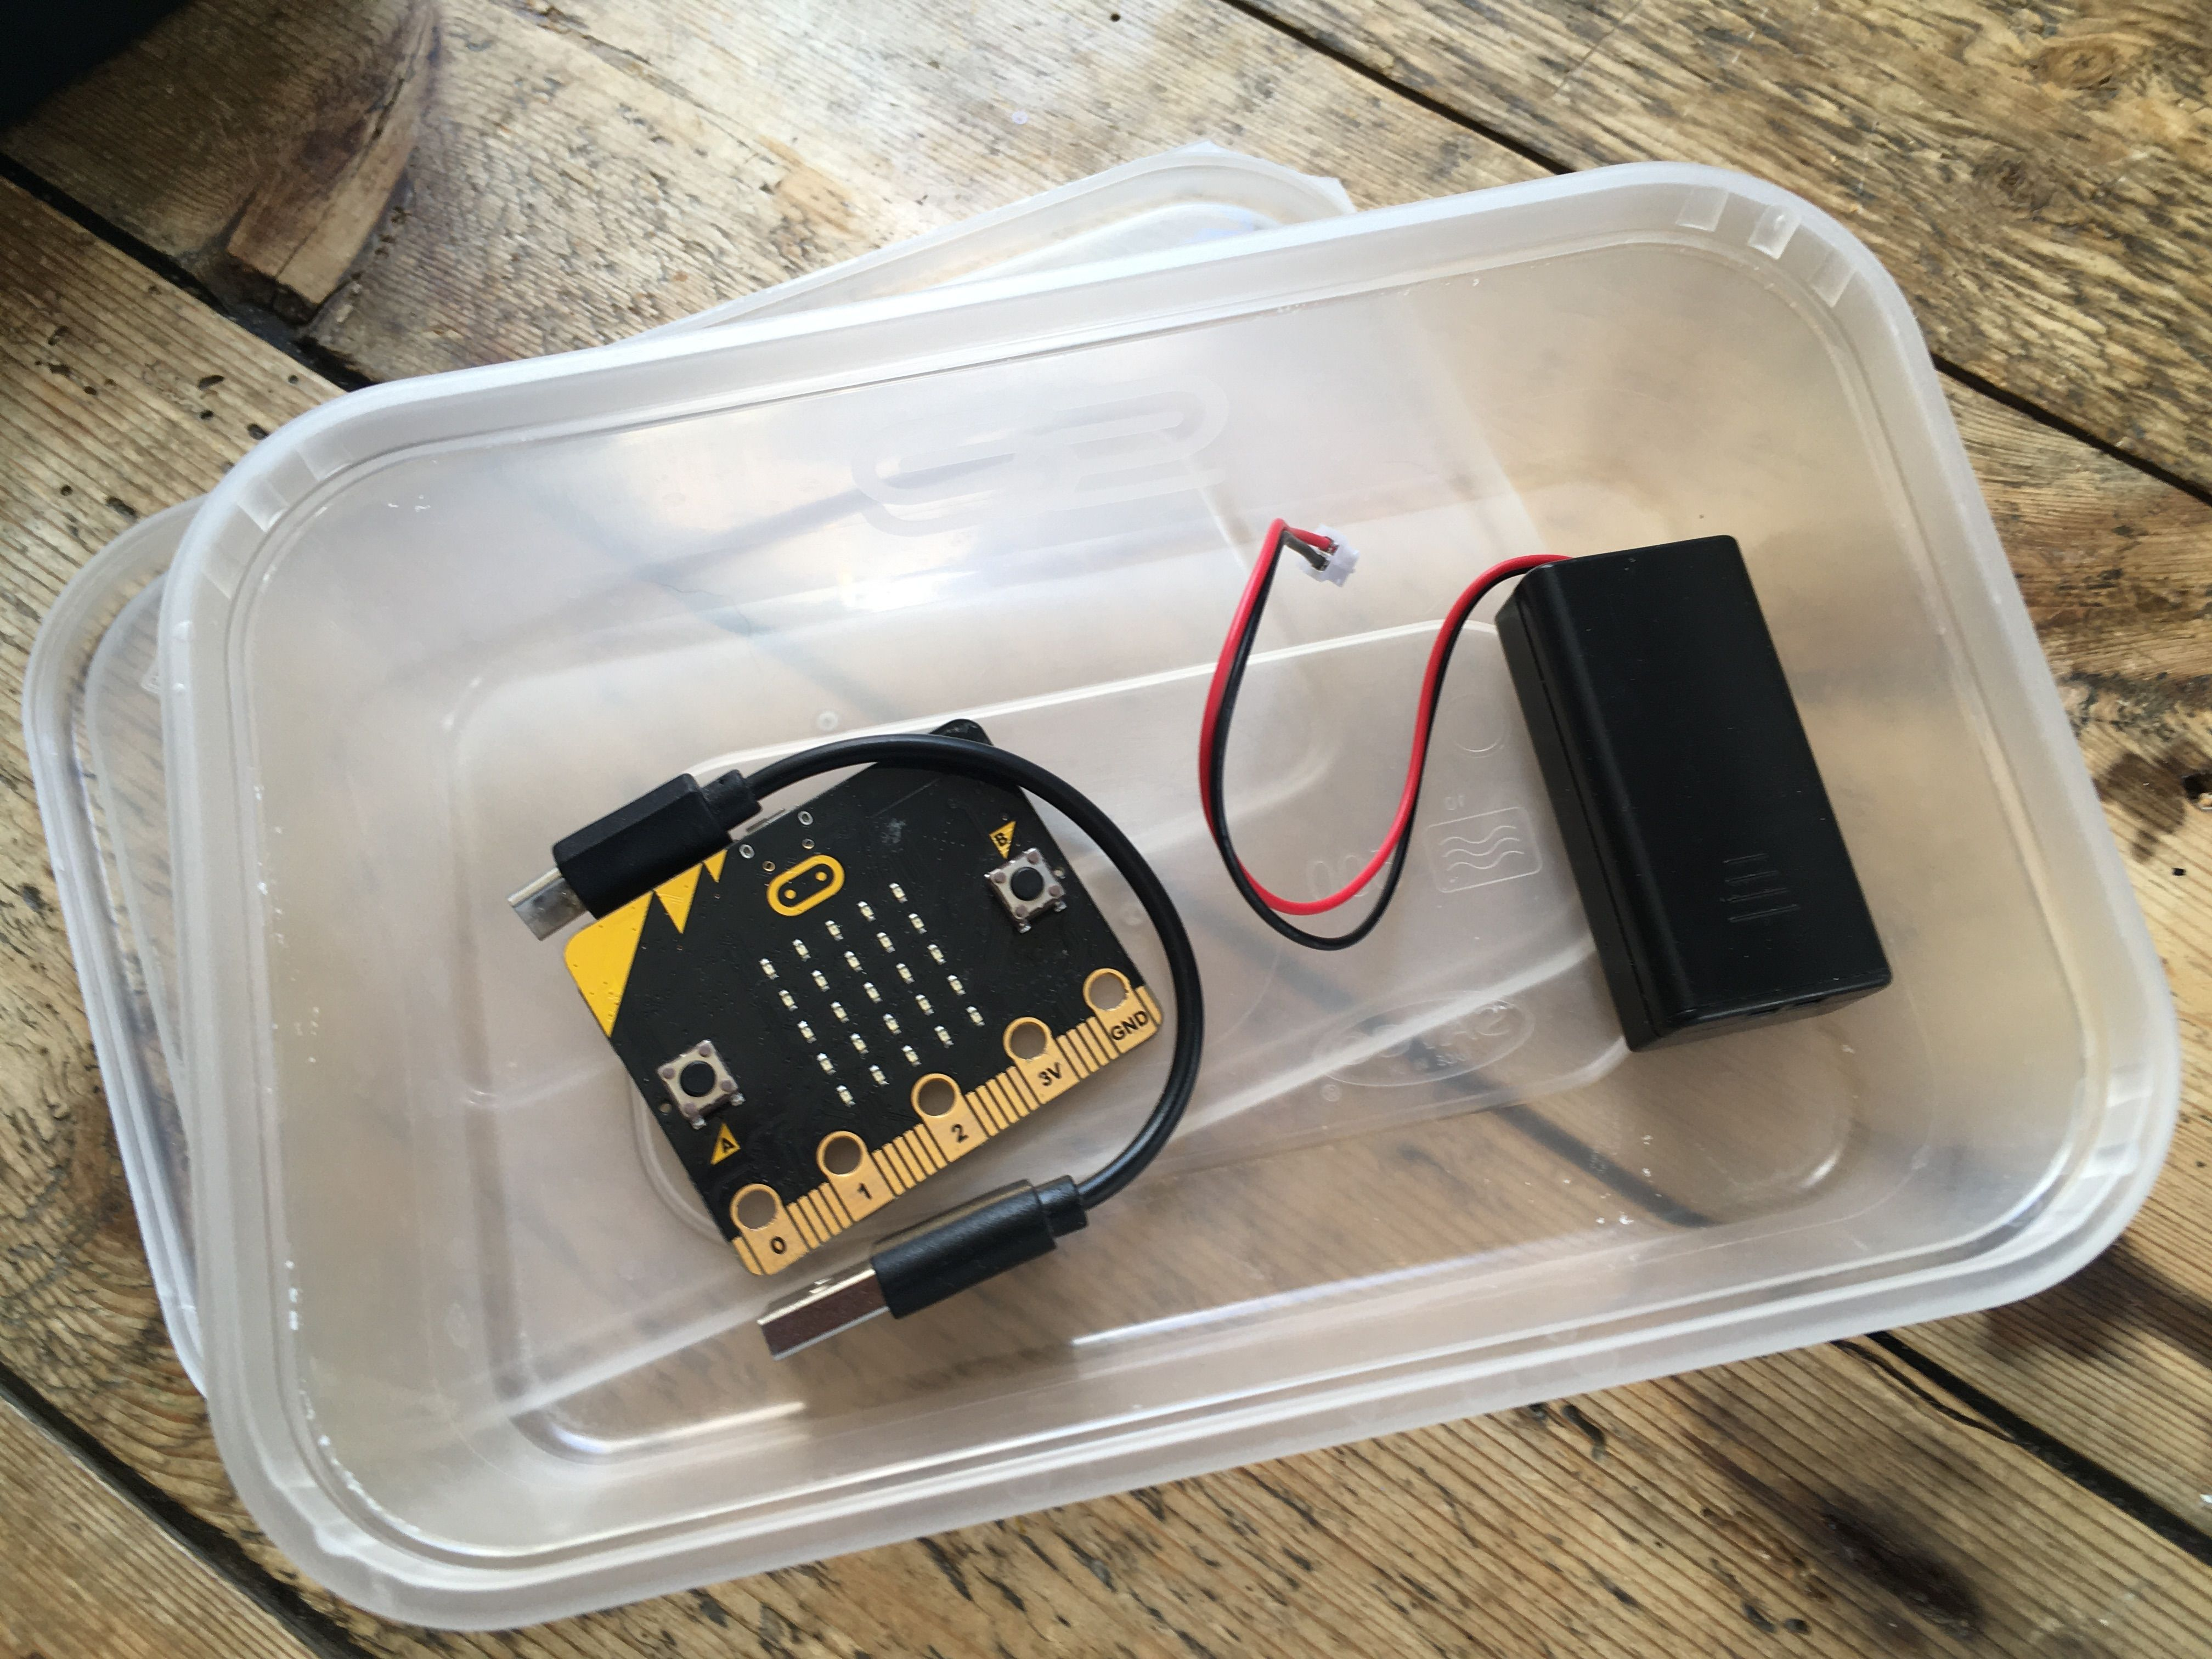 micro:bit stored in inexpensive food container